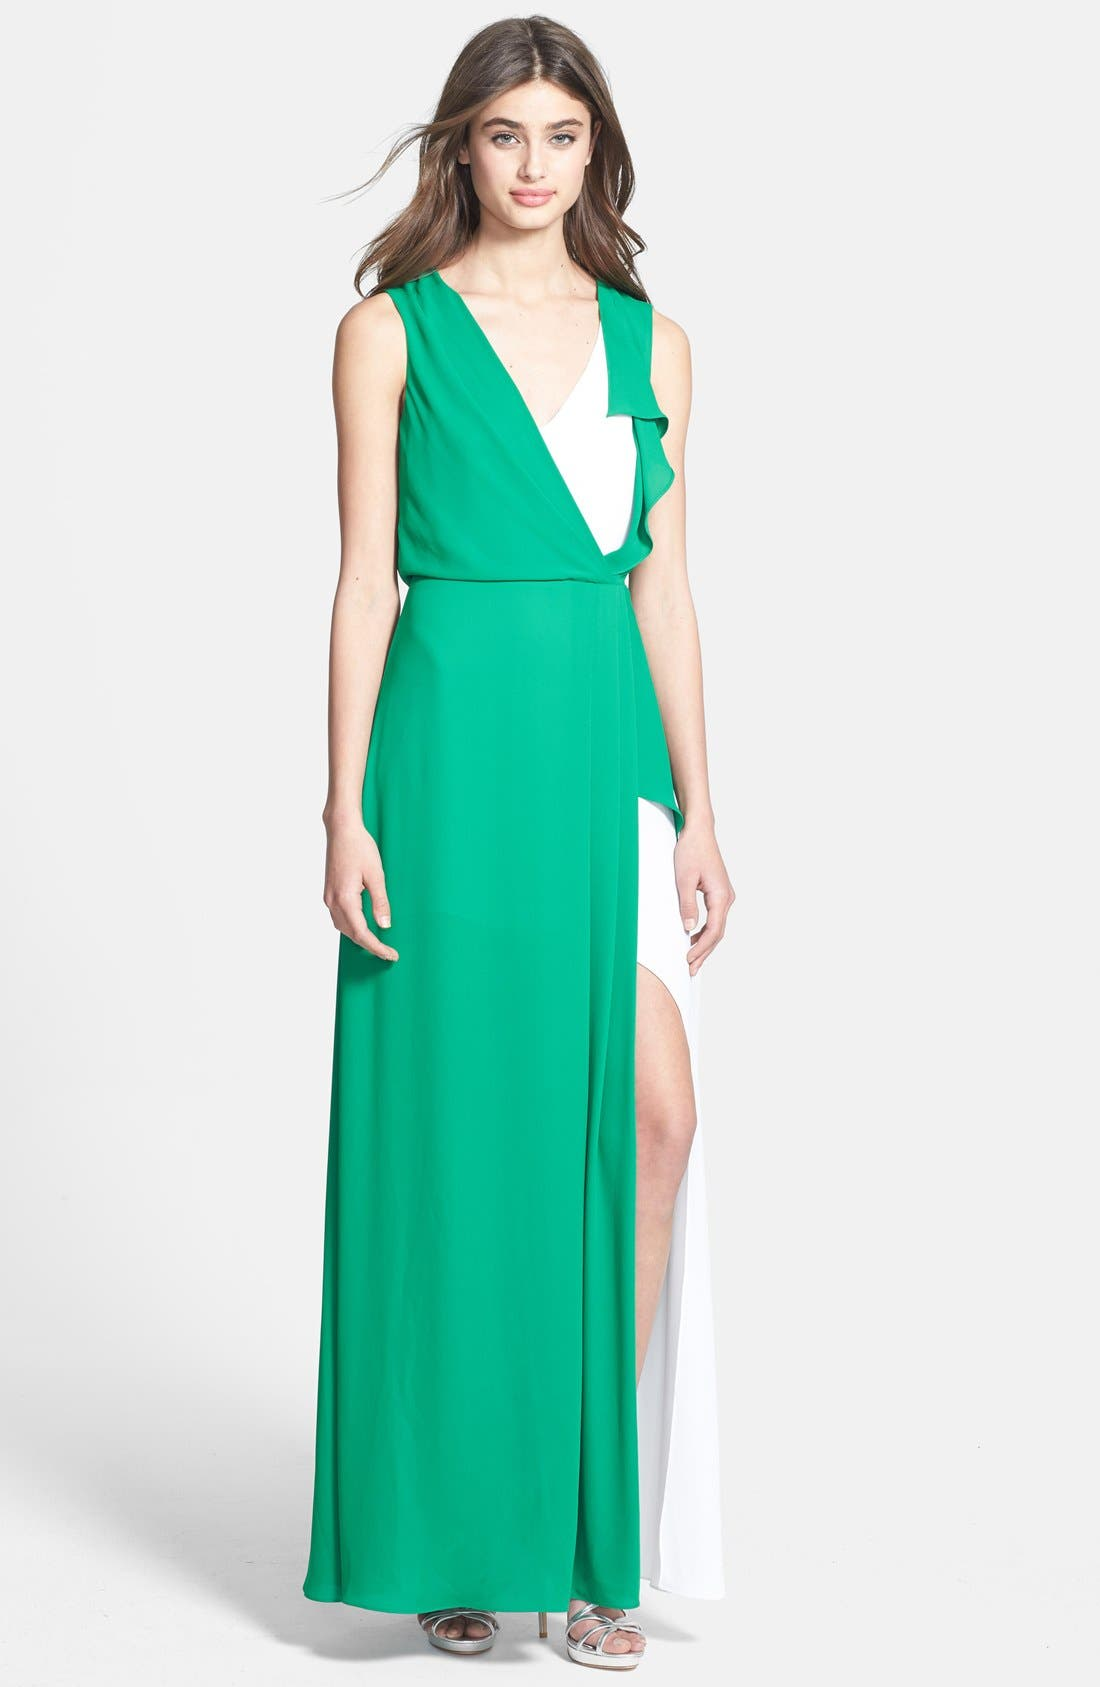 Alternate Image 1 Selected - BCBGMAXAZRIA 'Yuliana' Contrast Inset Gown